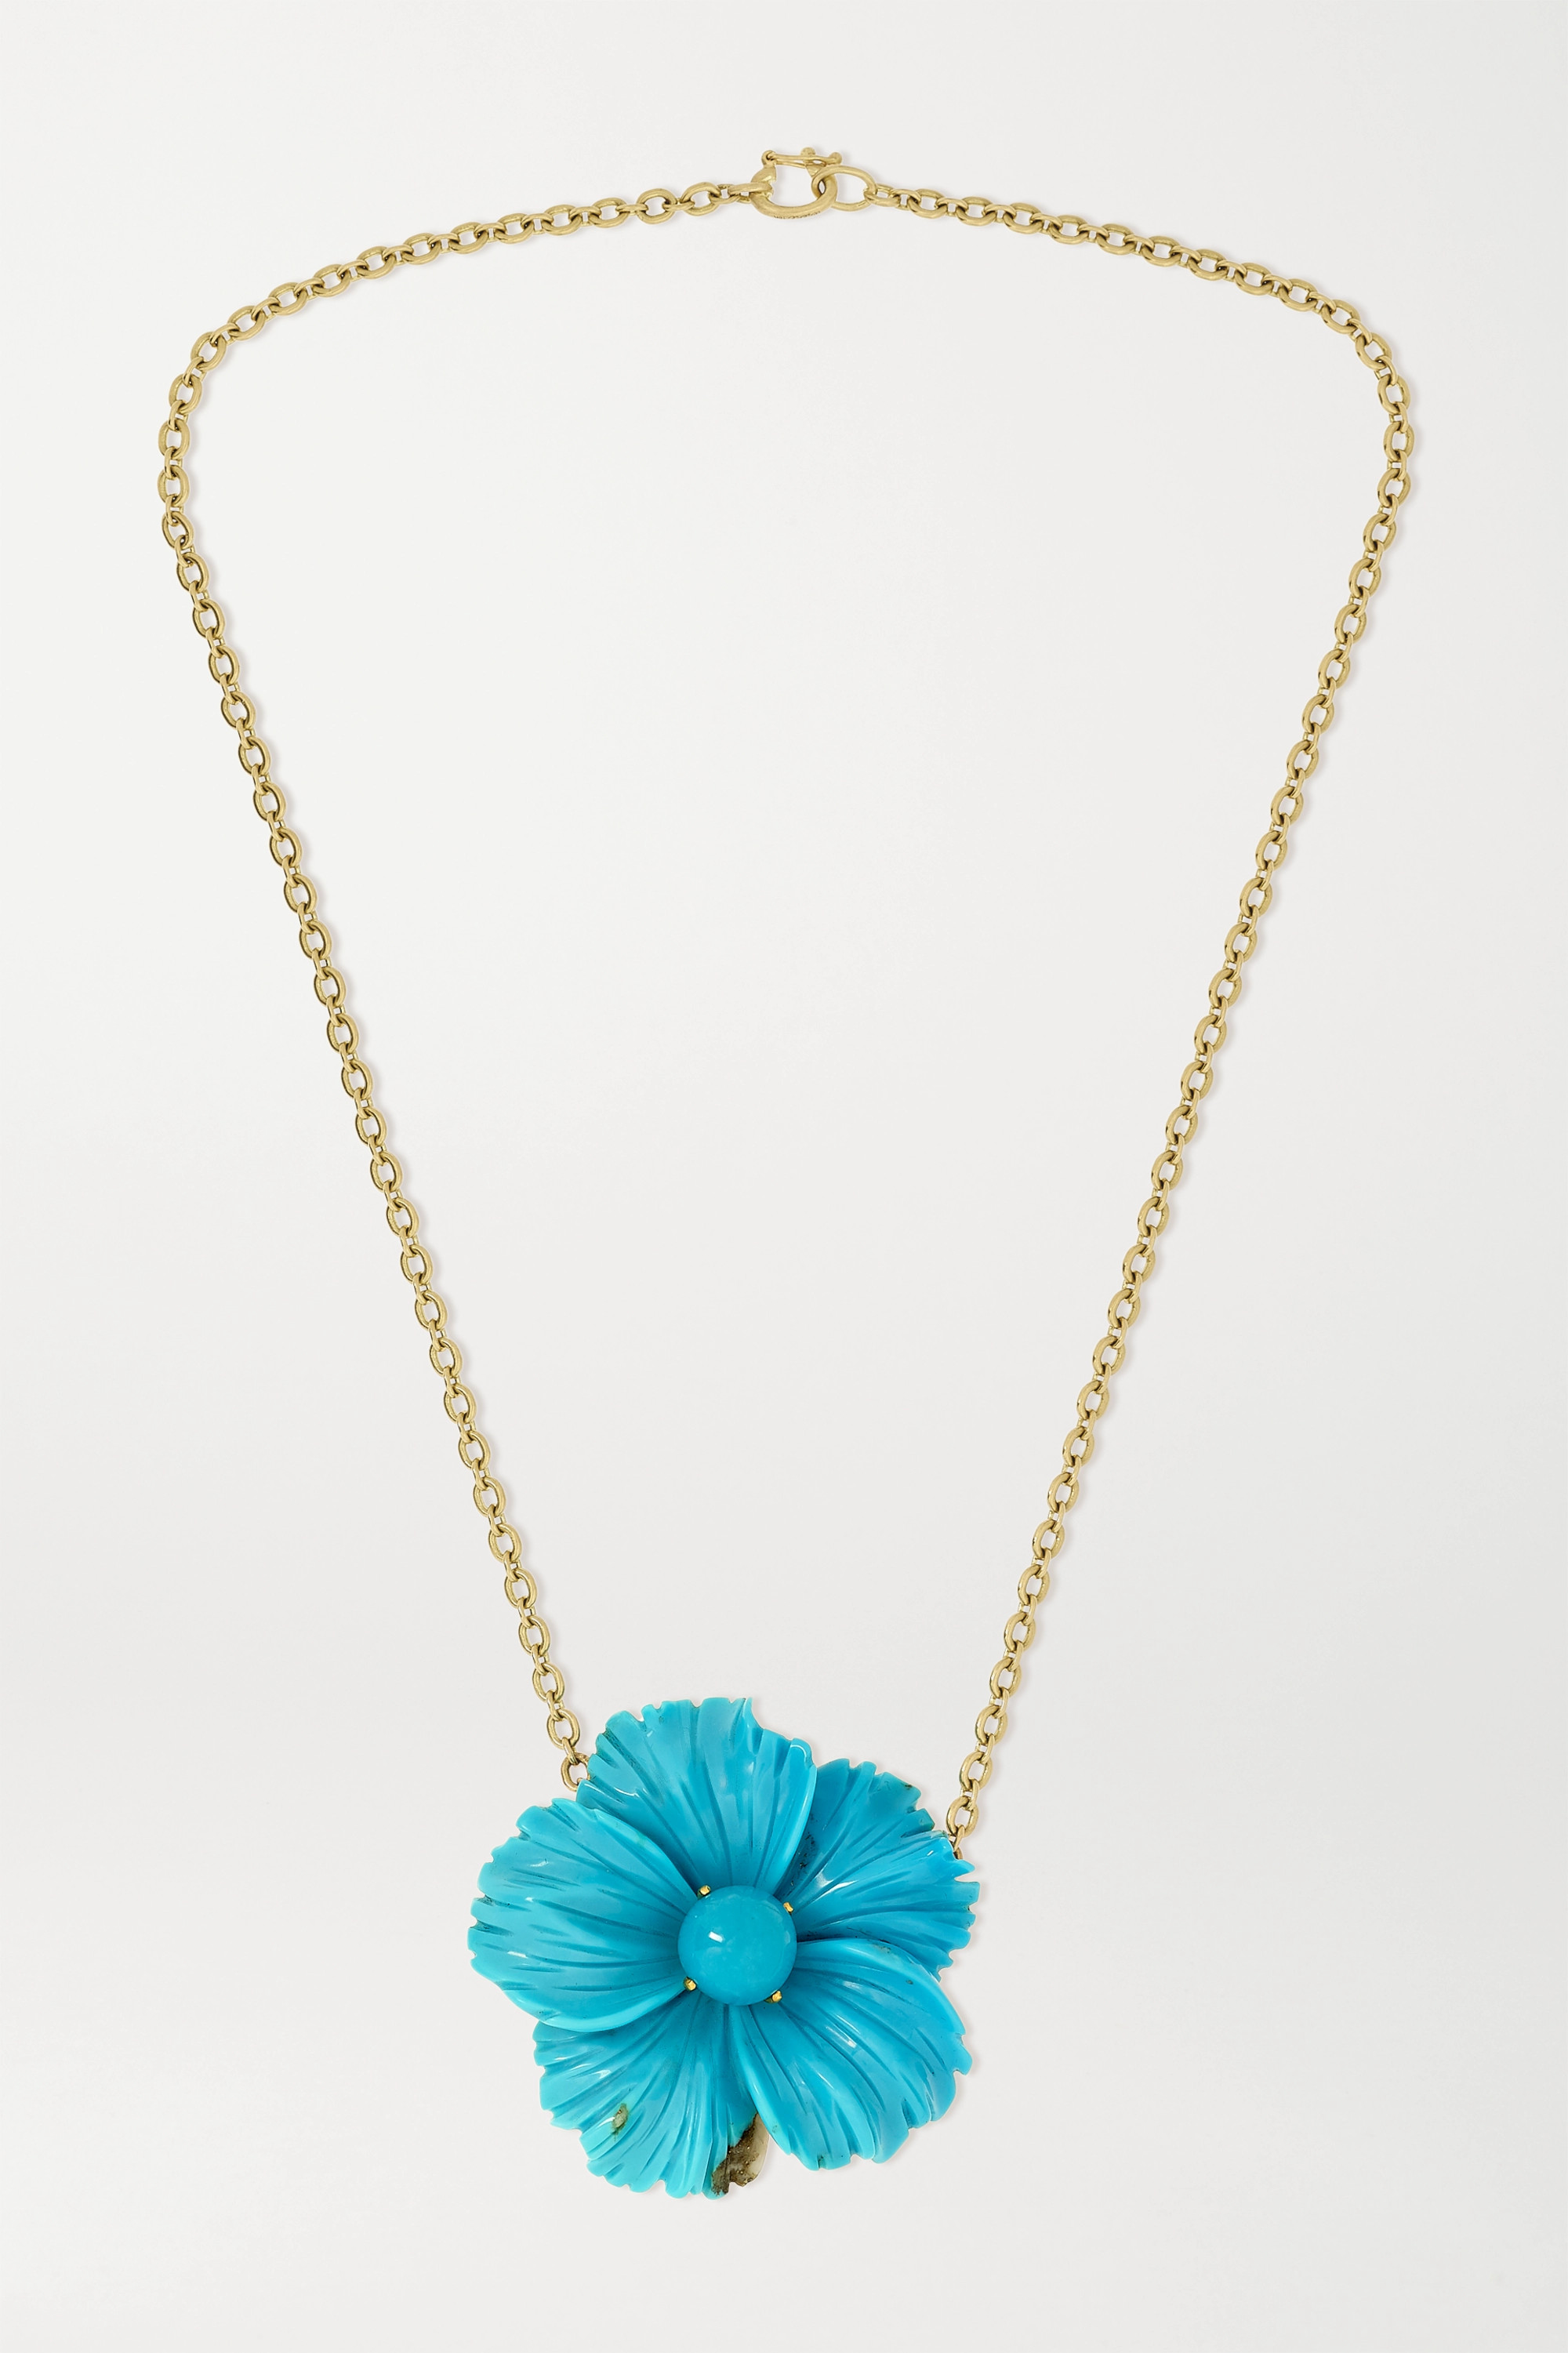 Irene Neuwirth Collier en or 18 carats et turquoise Tropical Flower